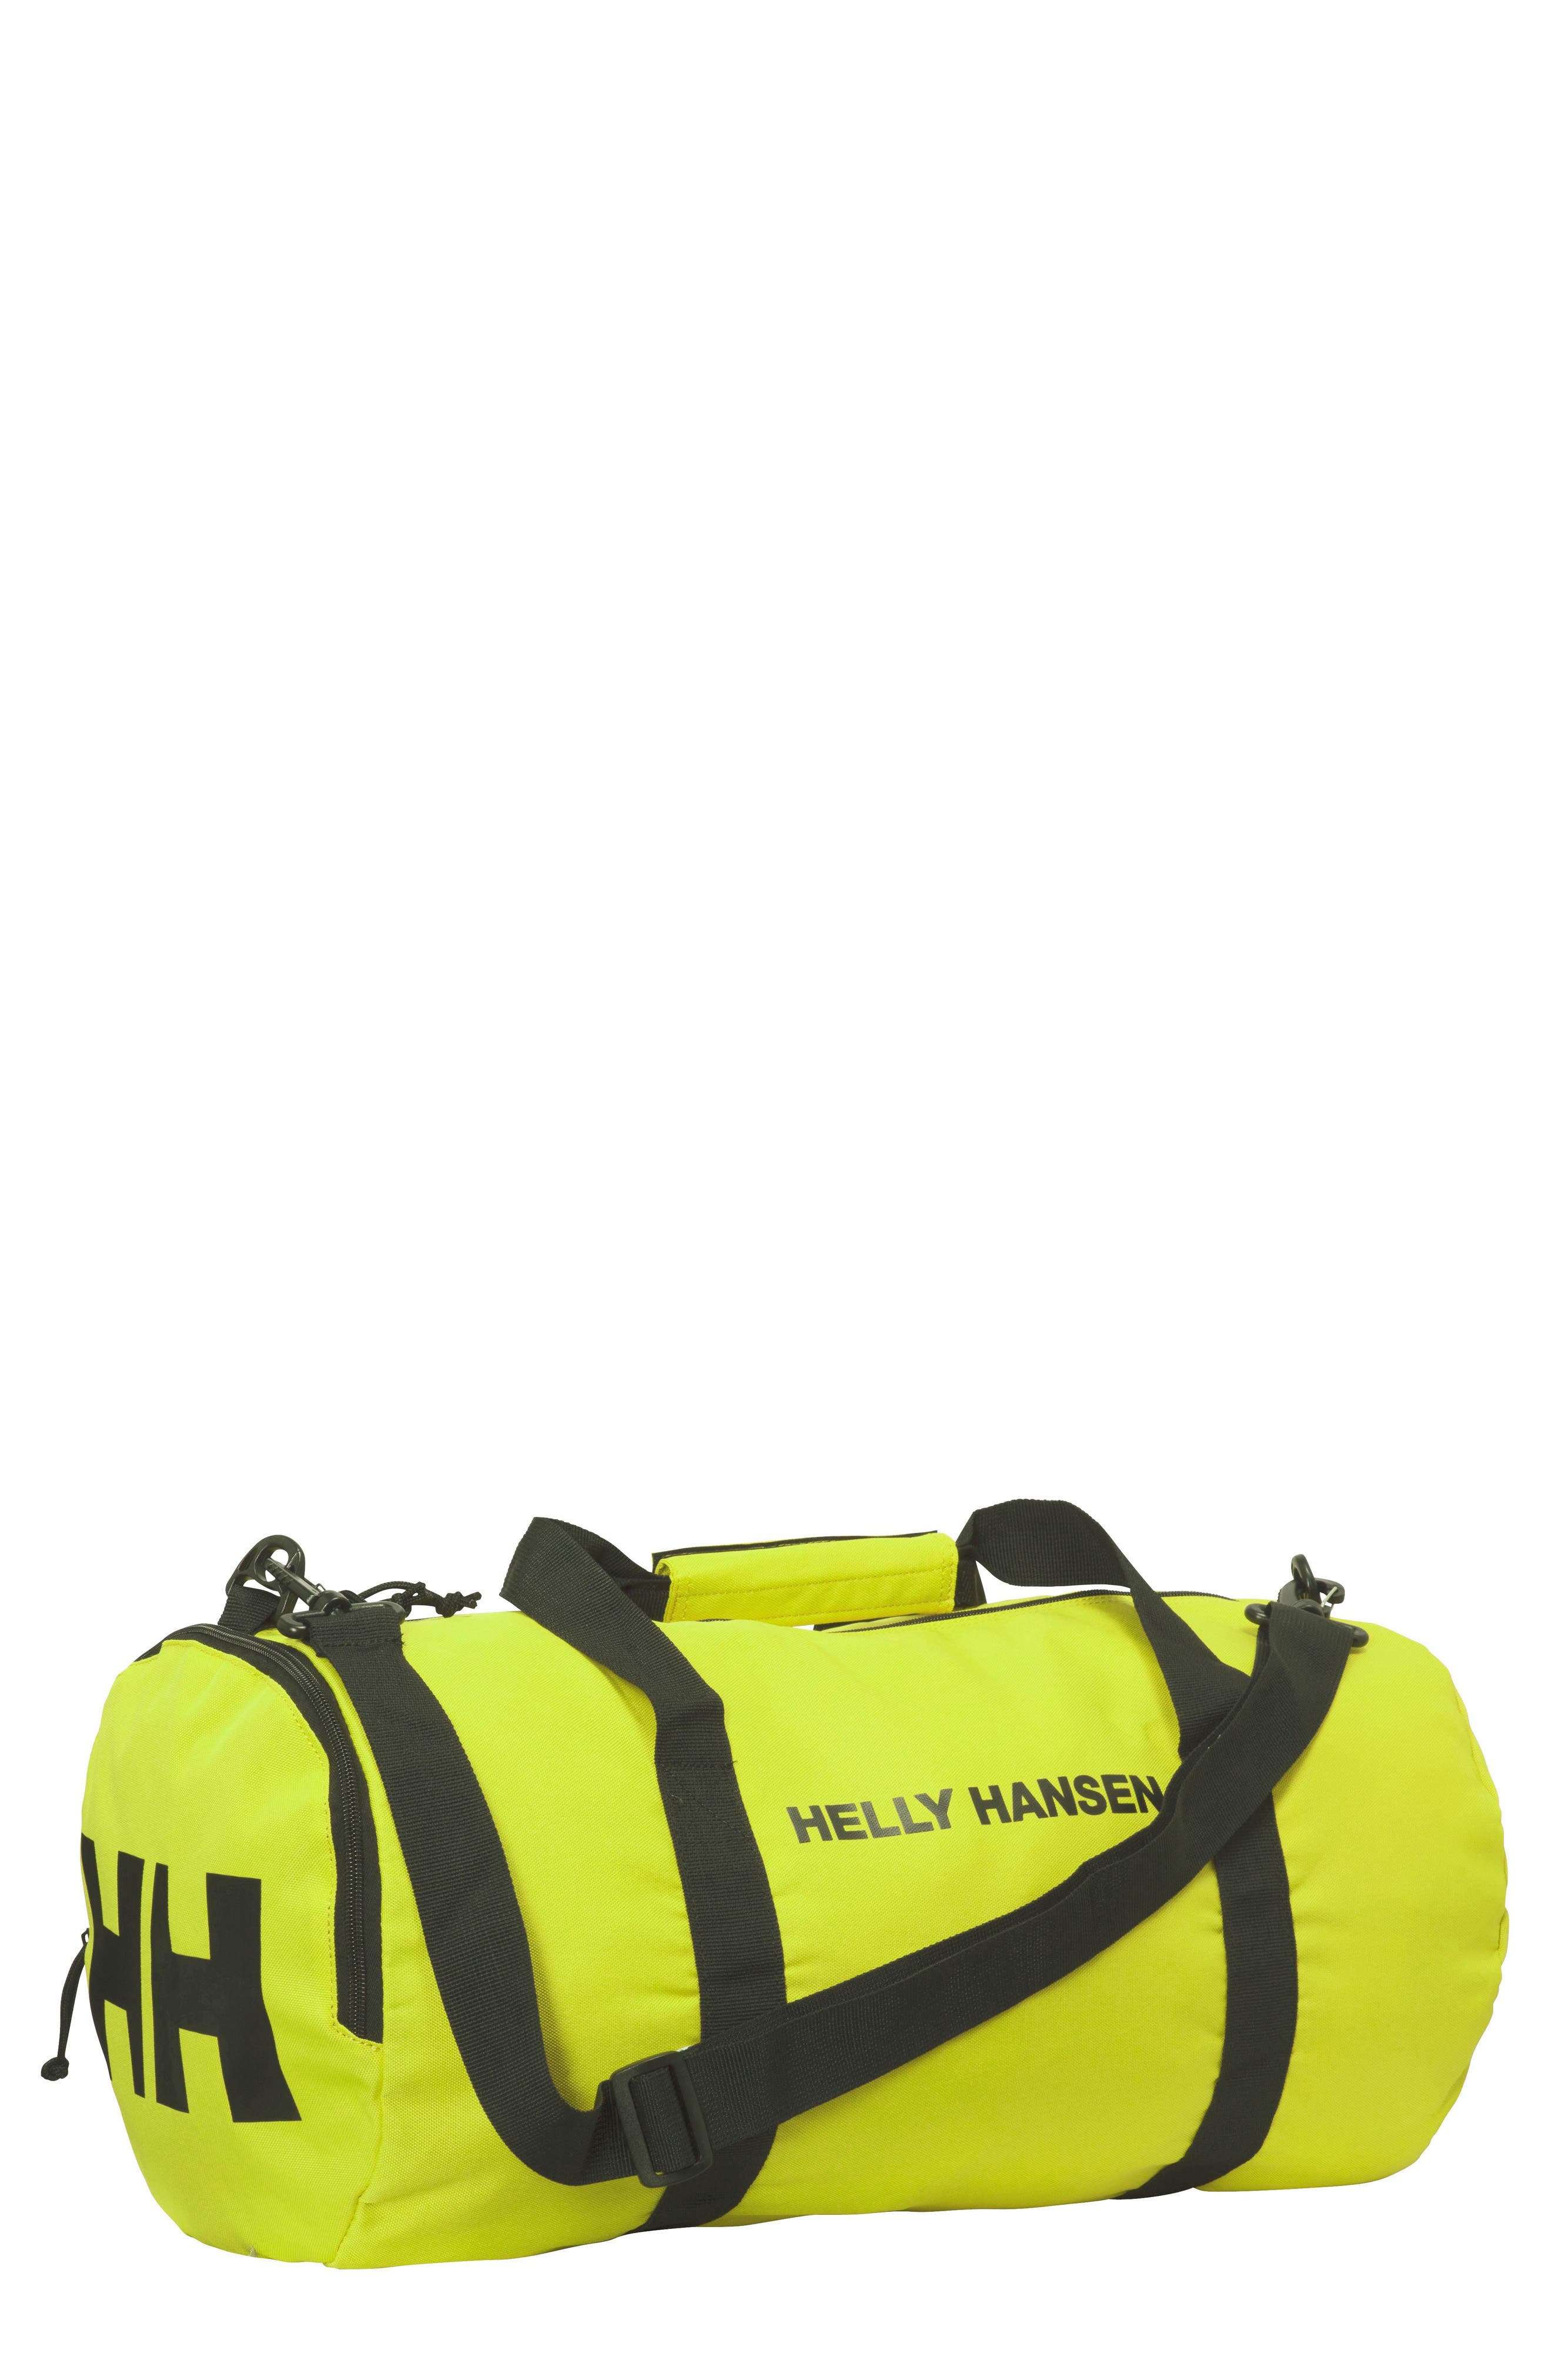 Alternate Image 1 Selected - Helly Hansen Small Packable Duffel Bag